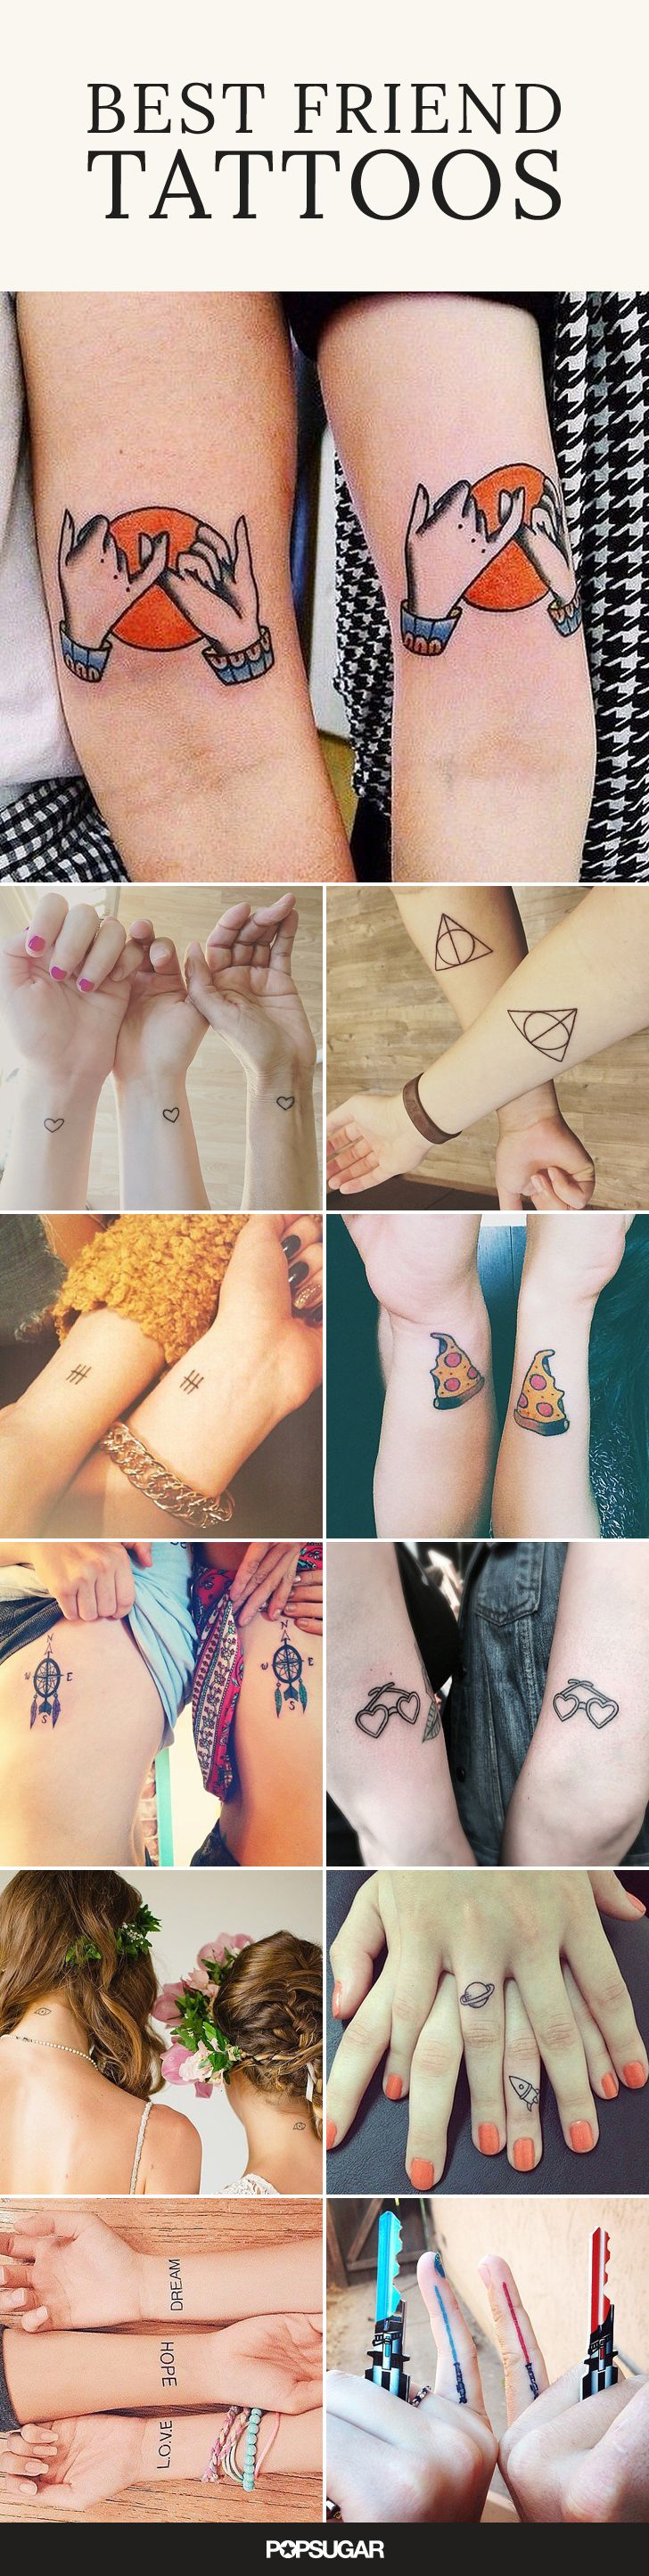 If your best friend is a real BFF, she'll make it permanent and get inked with you. After all, your friendship never happened unless you get a tattoo and Instagram it. We scoured the web to find the best tattoos between friends for you to use as an inspirational guide. #inkskin